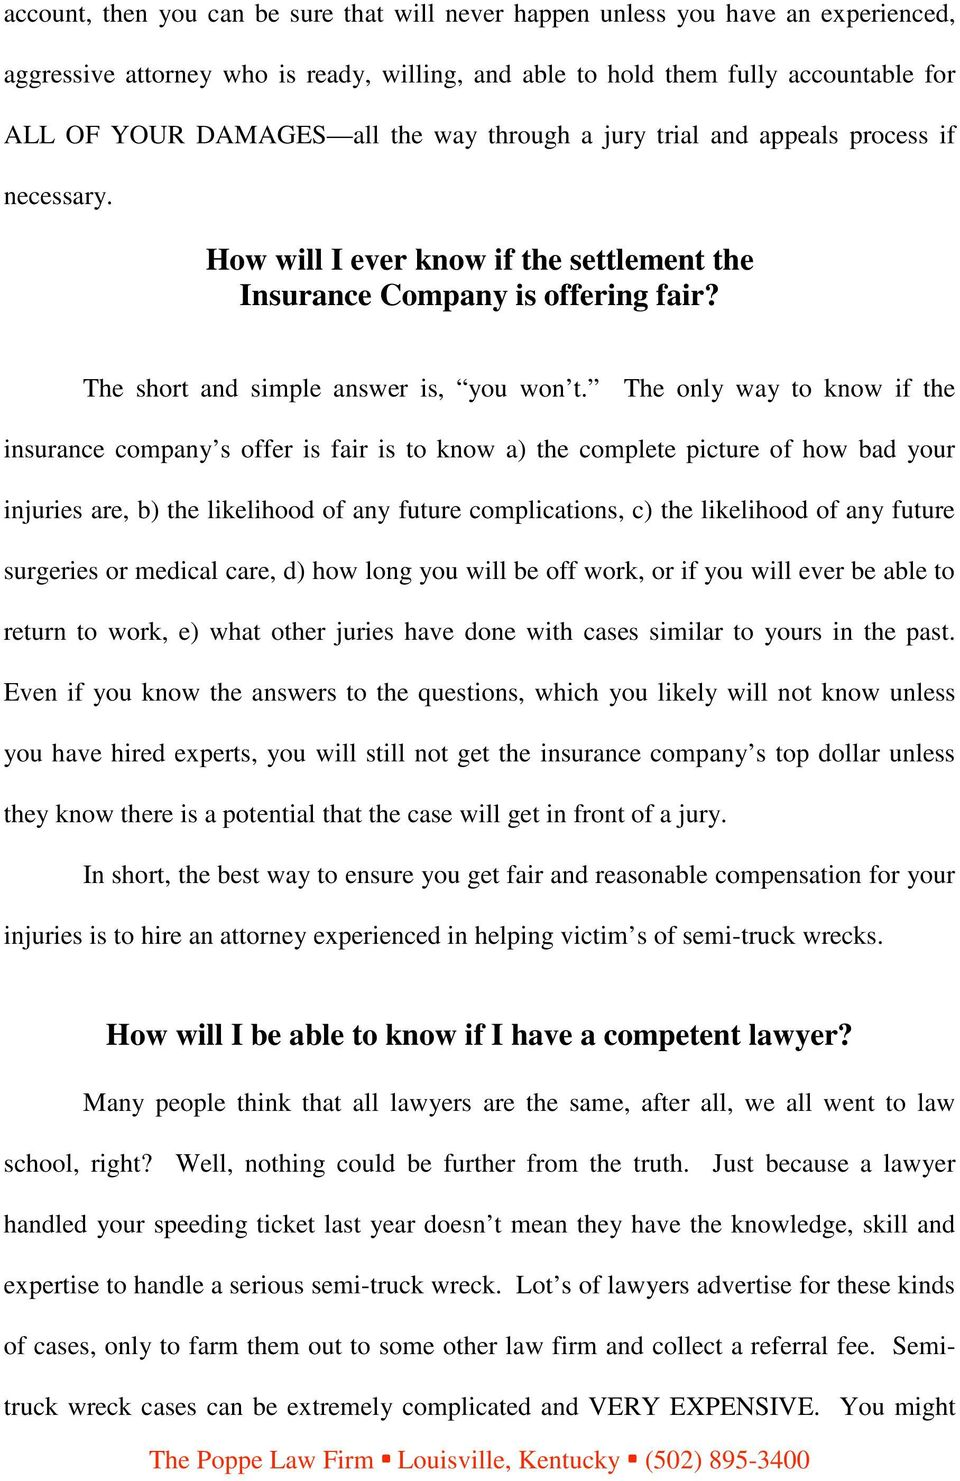 The only way to know if the insurance company s offer is fair is to know a) the complete picture of how bad your injuries are, b) the likelihood of any future complications, c) the likelihood of any